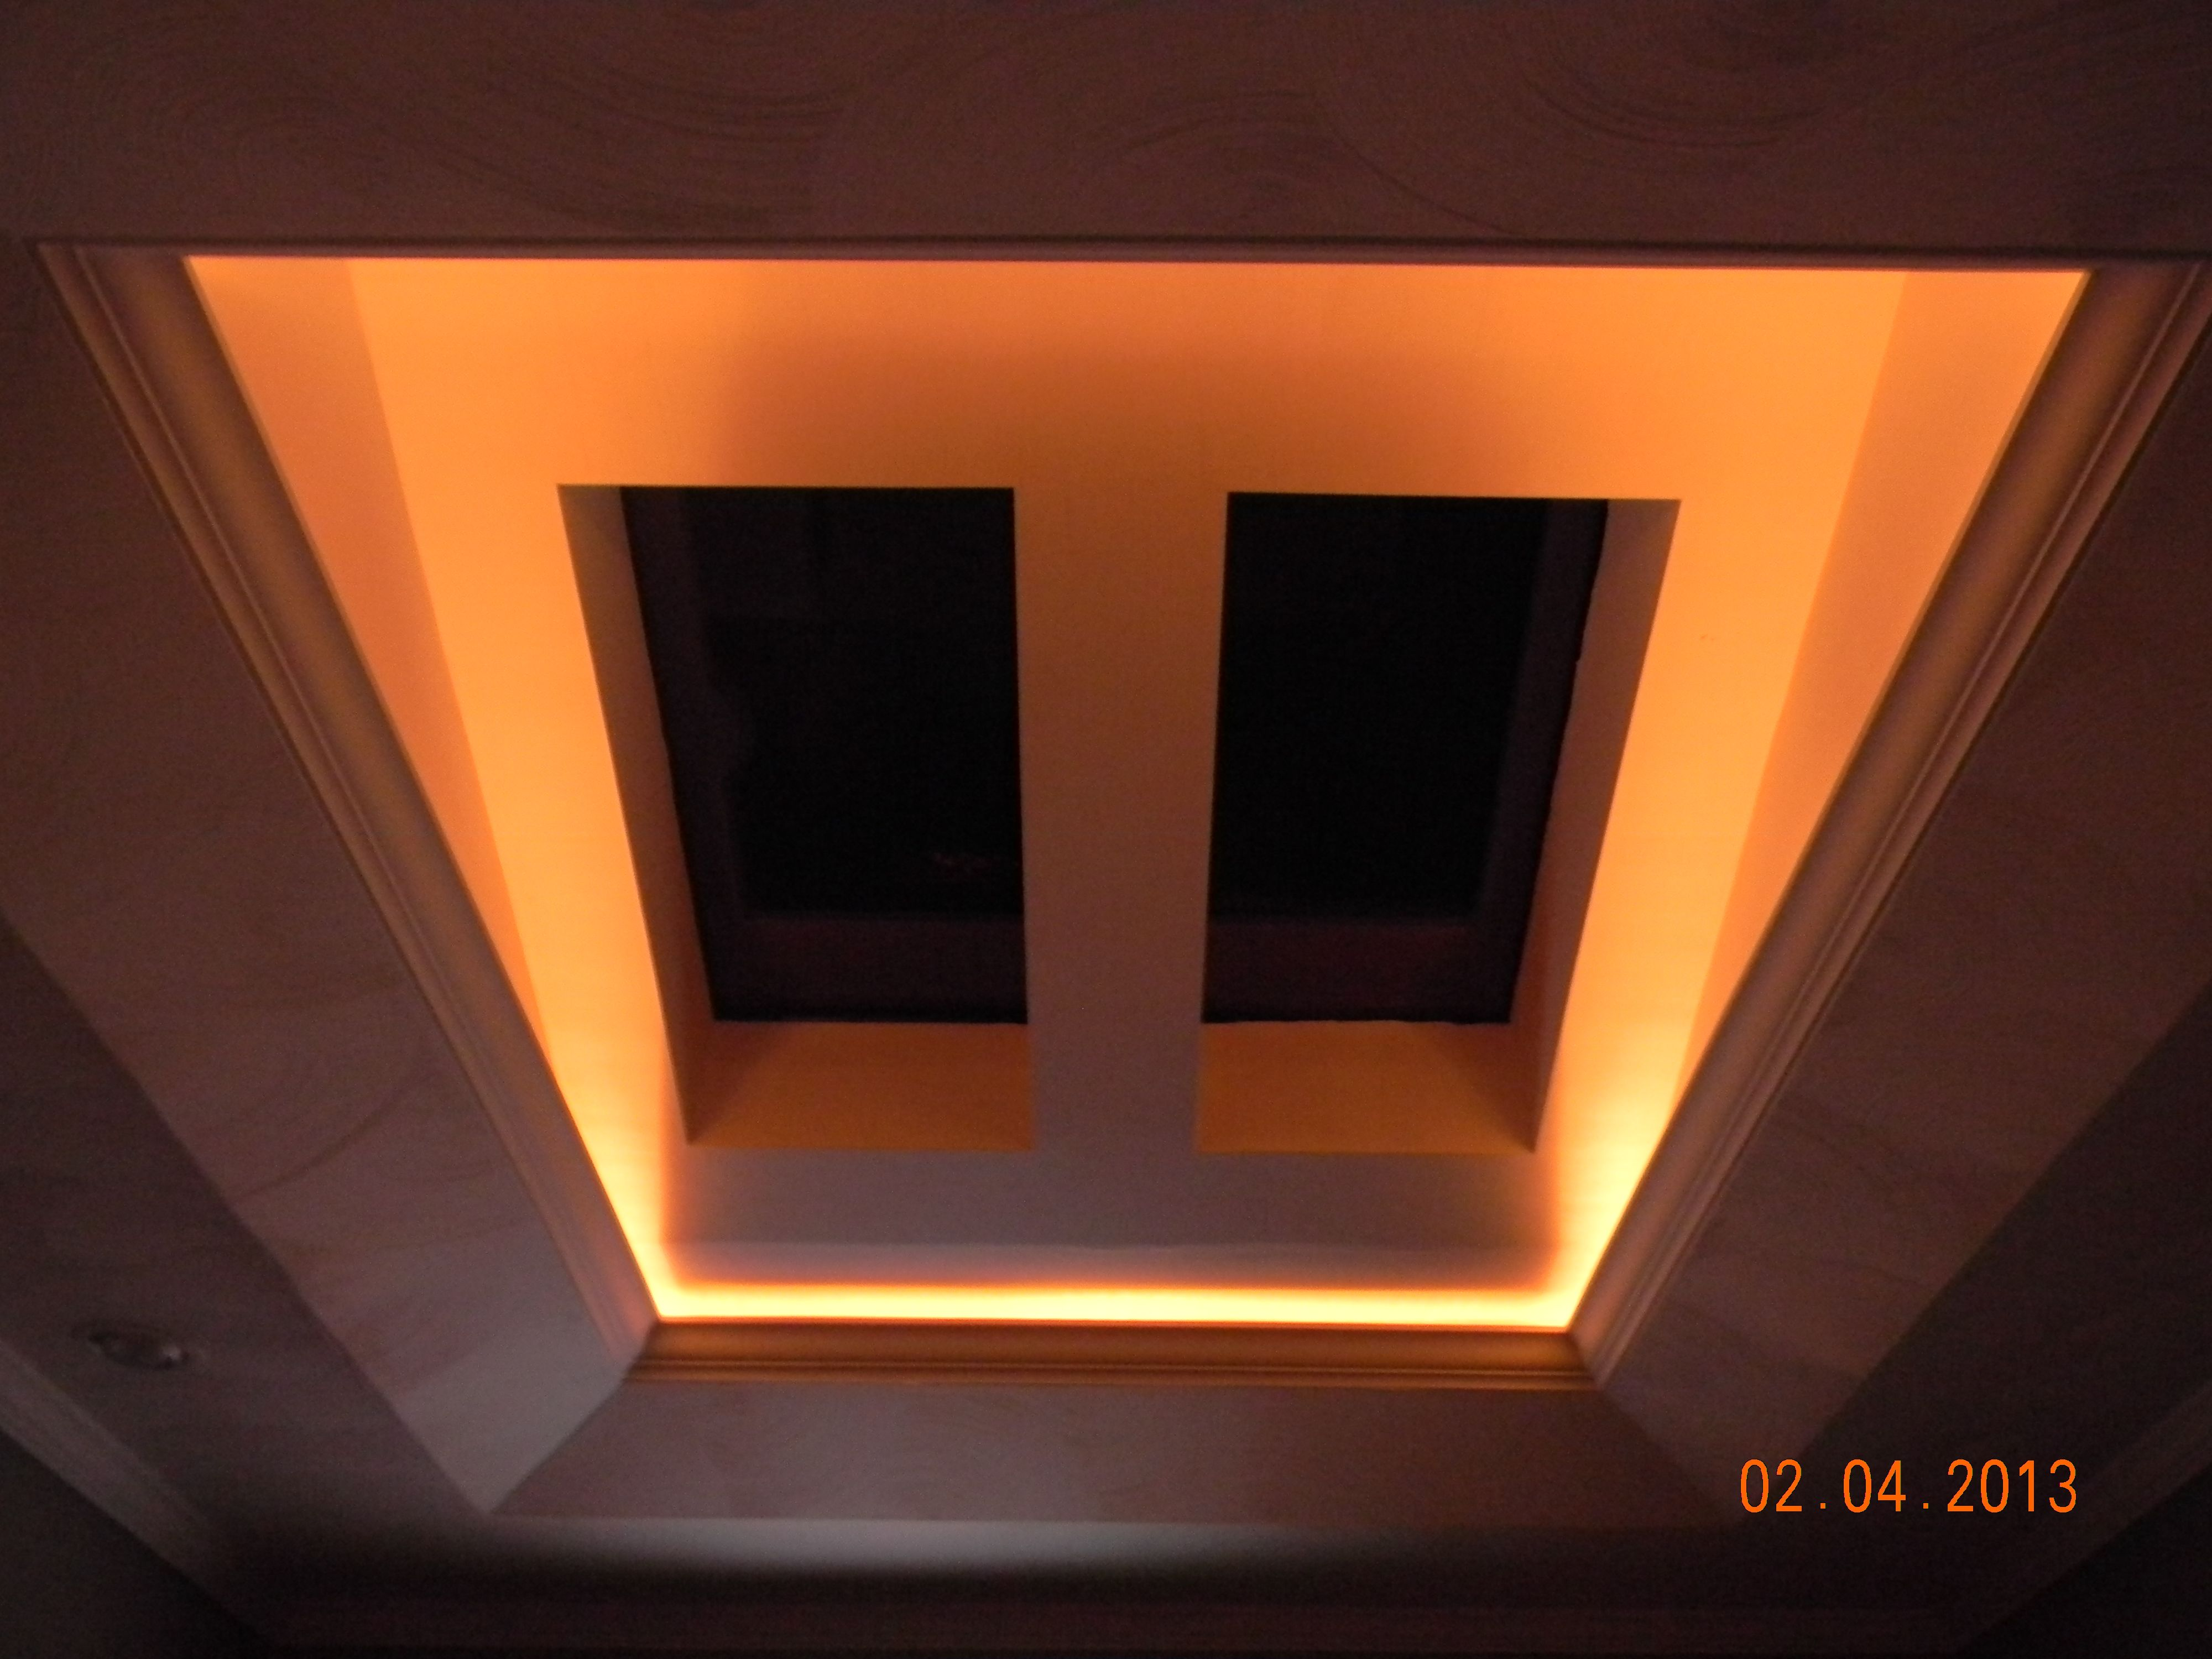 The Skylights In Our Living Room Nothing Like Looking At The Stars At Night Roof Lantern Skylight Skylight Design